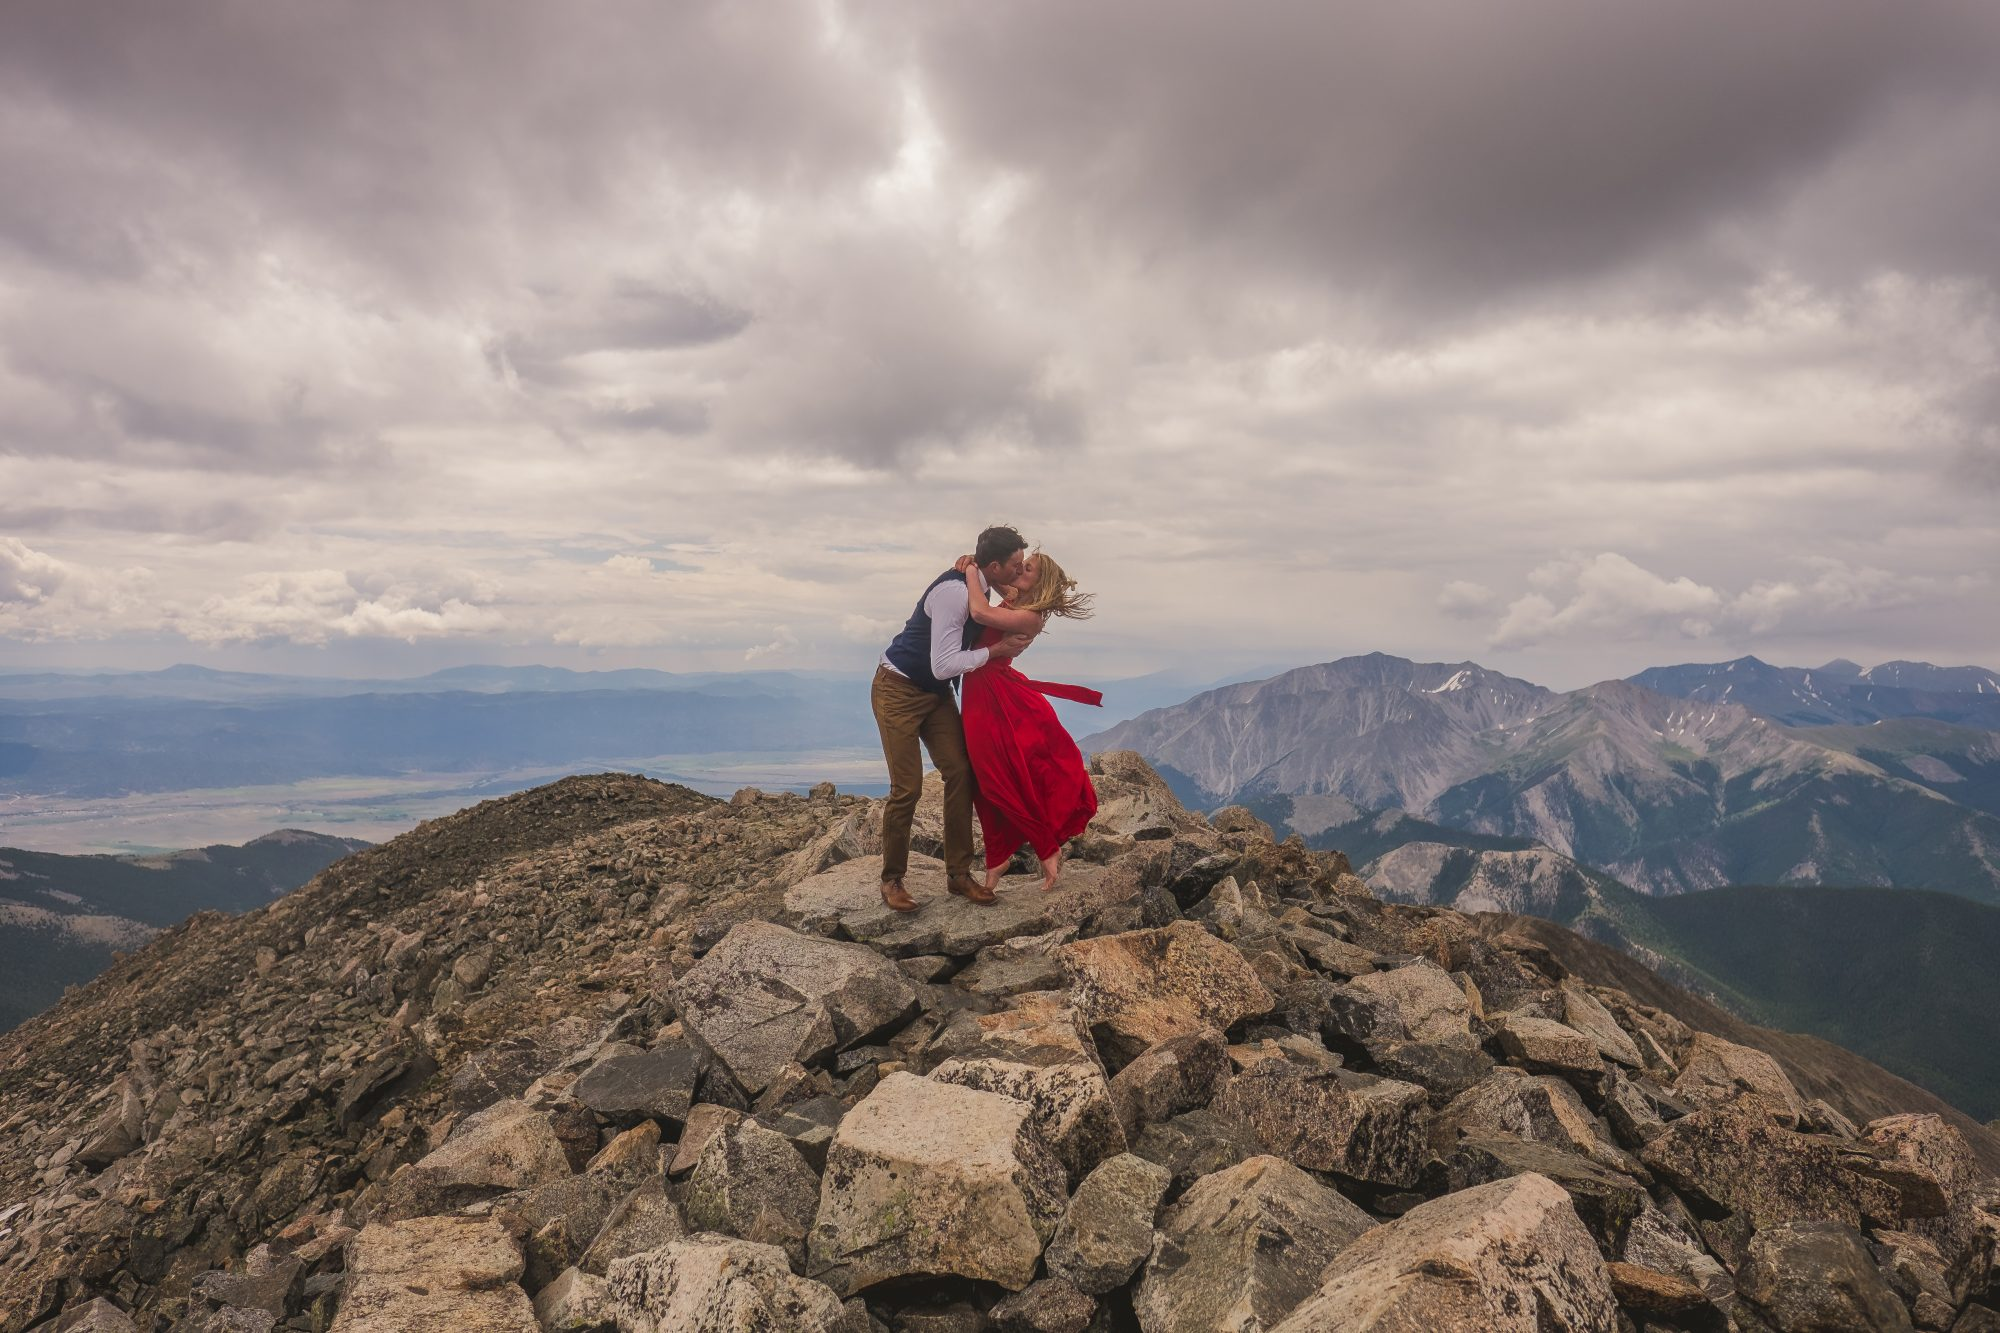 A Surprise Proposal at the Top of a Colorado Fourteener, Mount Yale